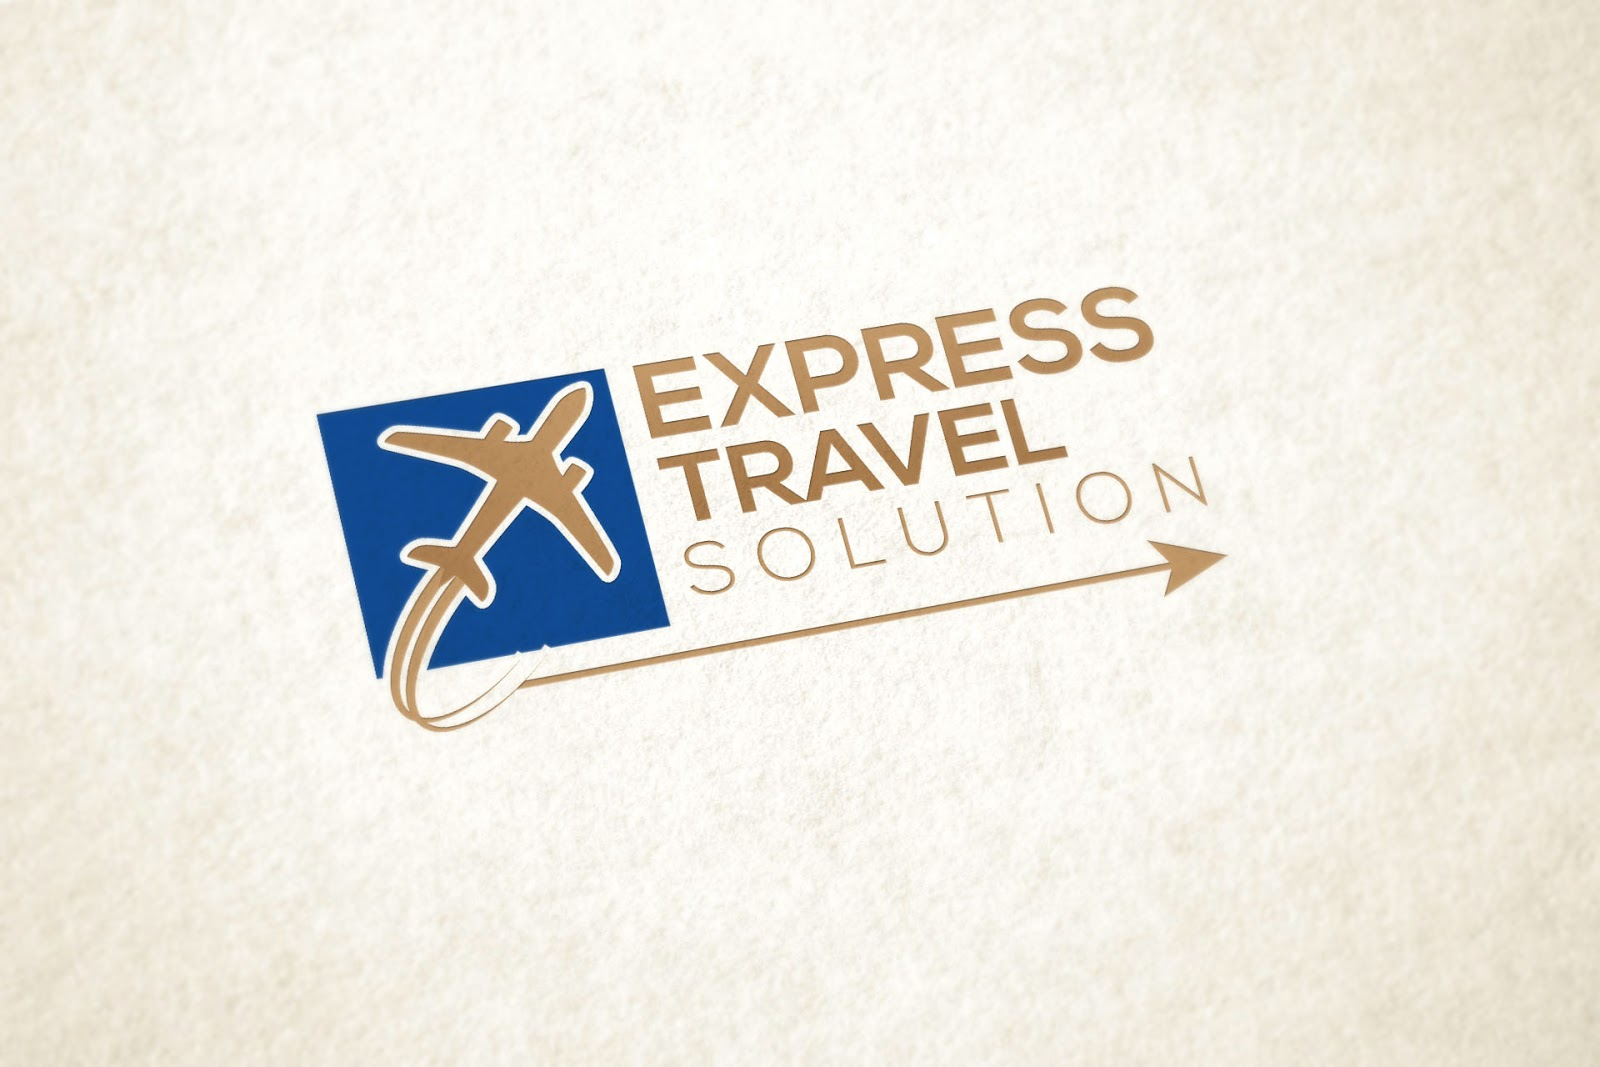 Timeshare express services?